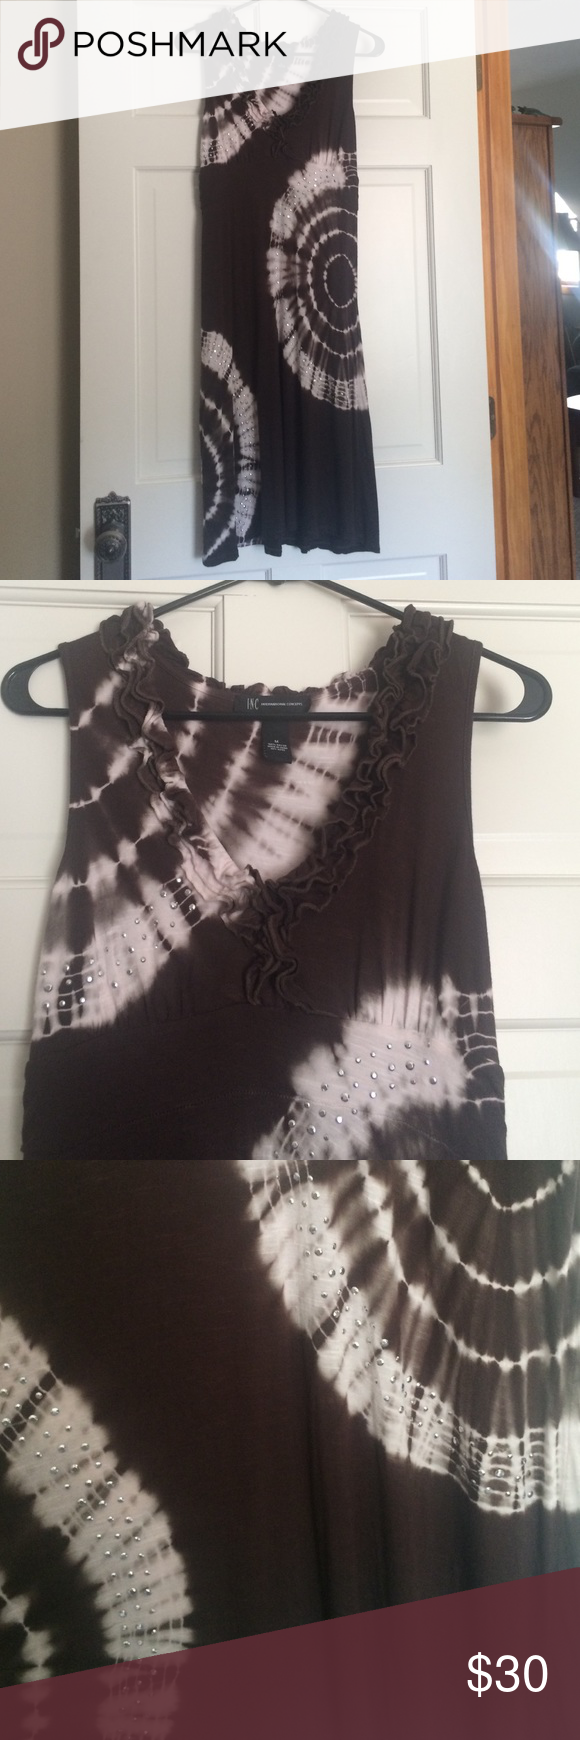 Tie Dye Sundress Tie dye dress with ruffled accents and rhinestone details  No trades or other apps. Make me a reasonable offer! 🌿🌤💞 INC International Concepts Dresses Midi